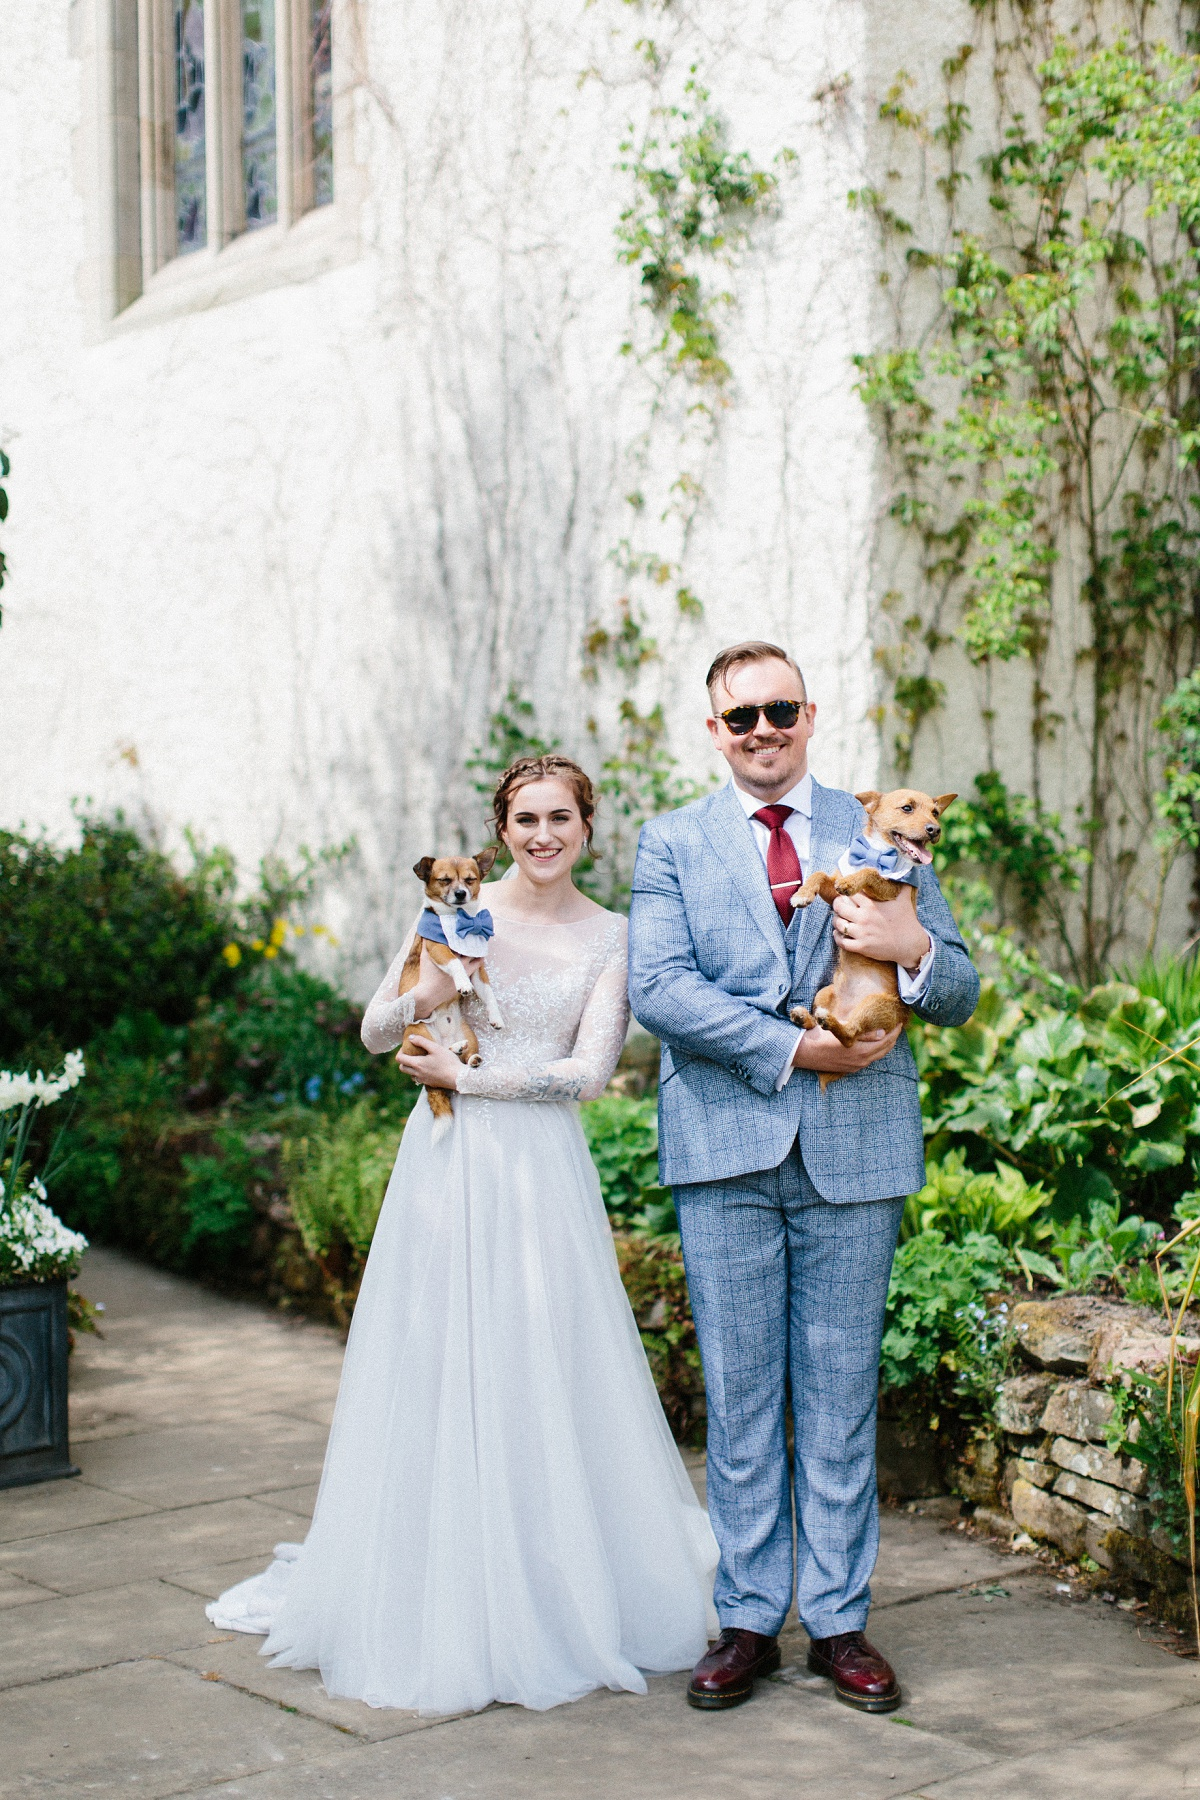 An Elegant Wedding at Lartington Hall (c) Melissa Beattie (20)